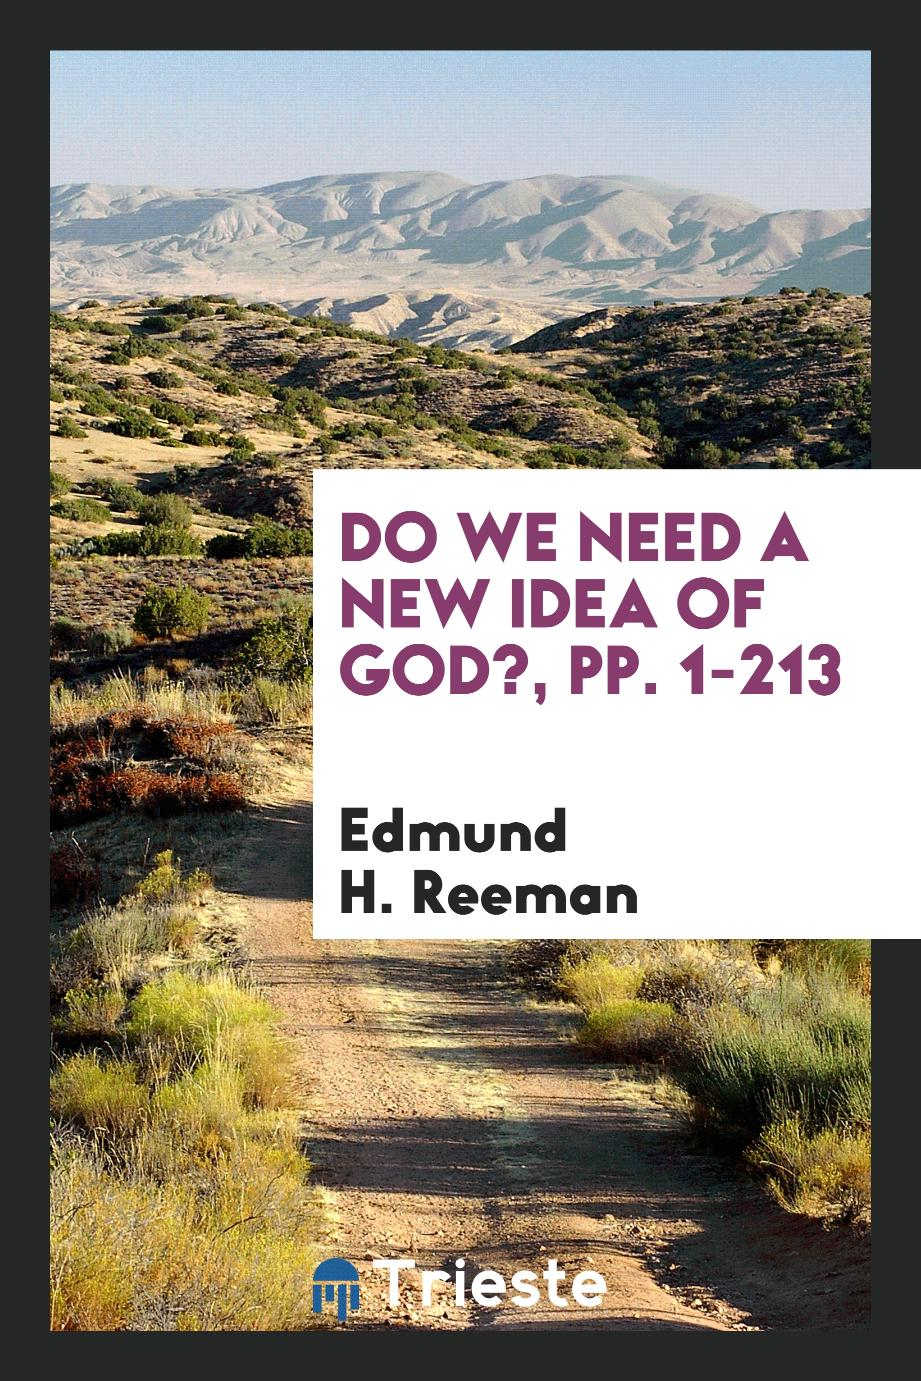 Do We Need a New Idea of God?, pp. 1-213